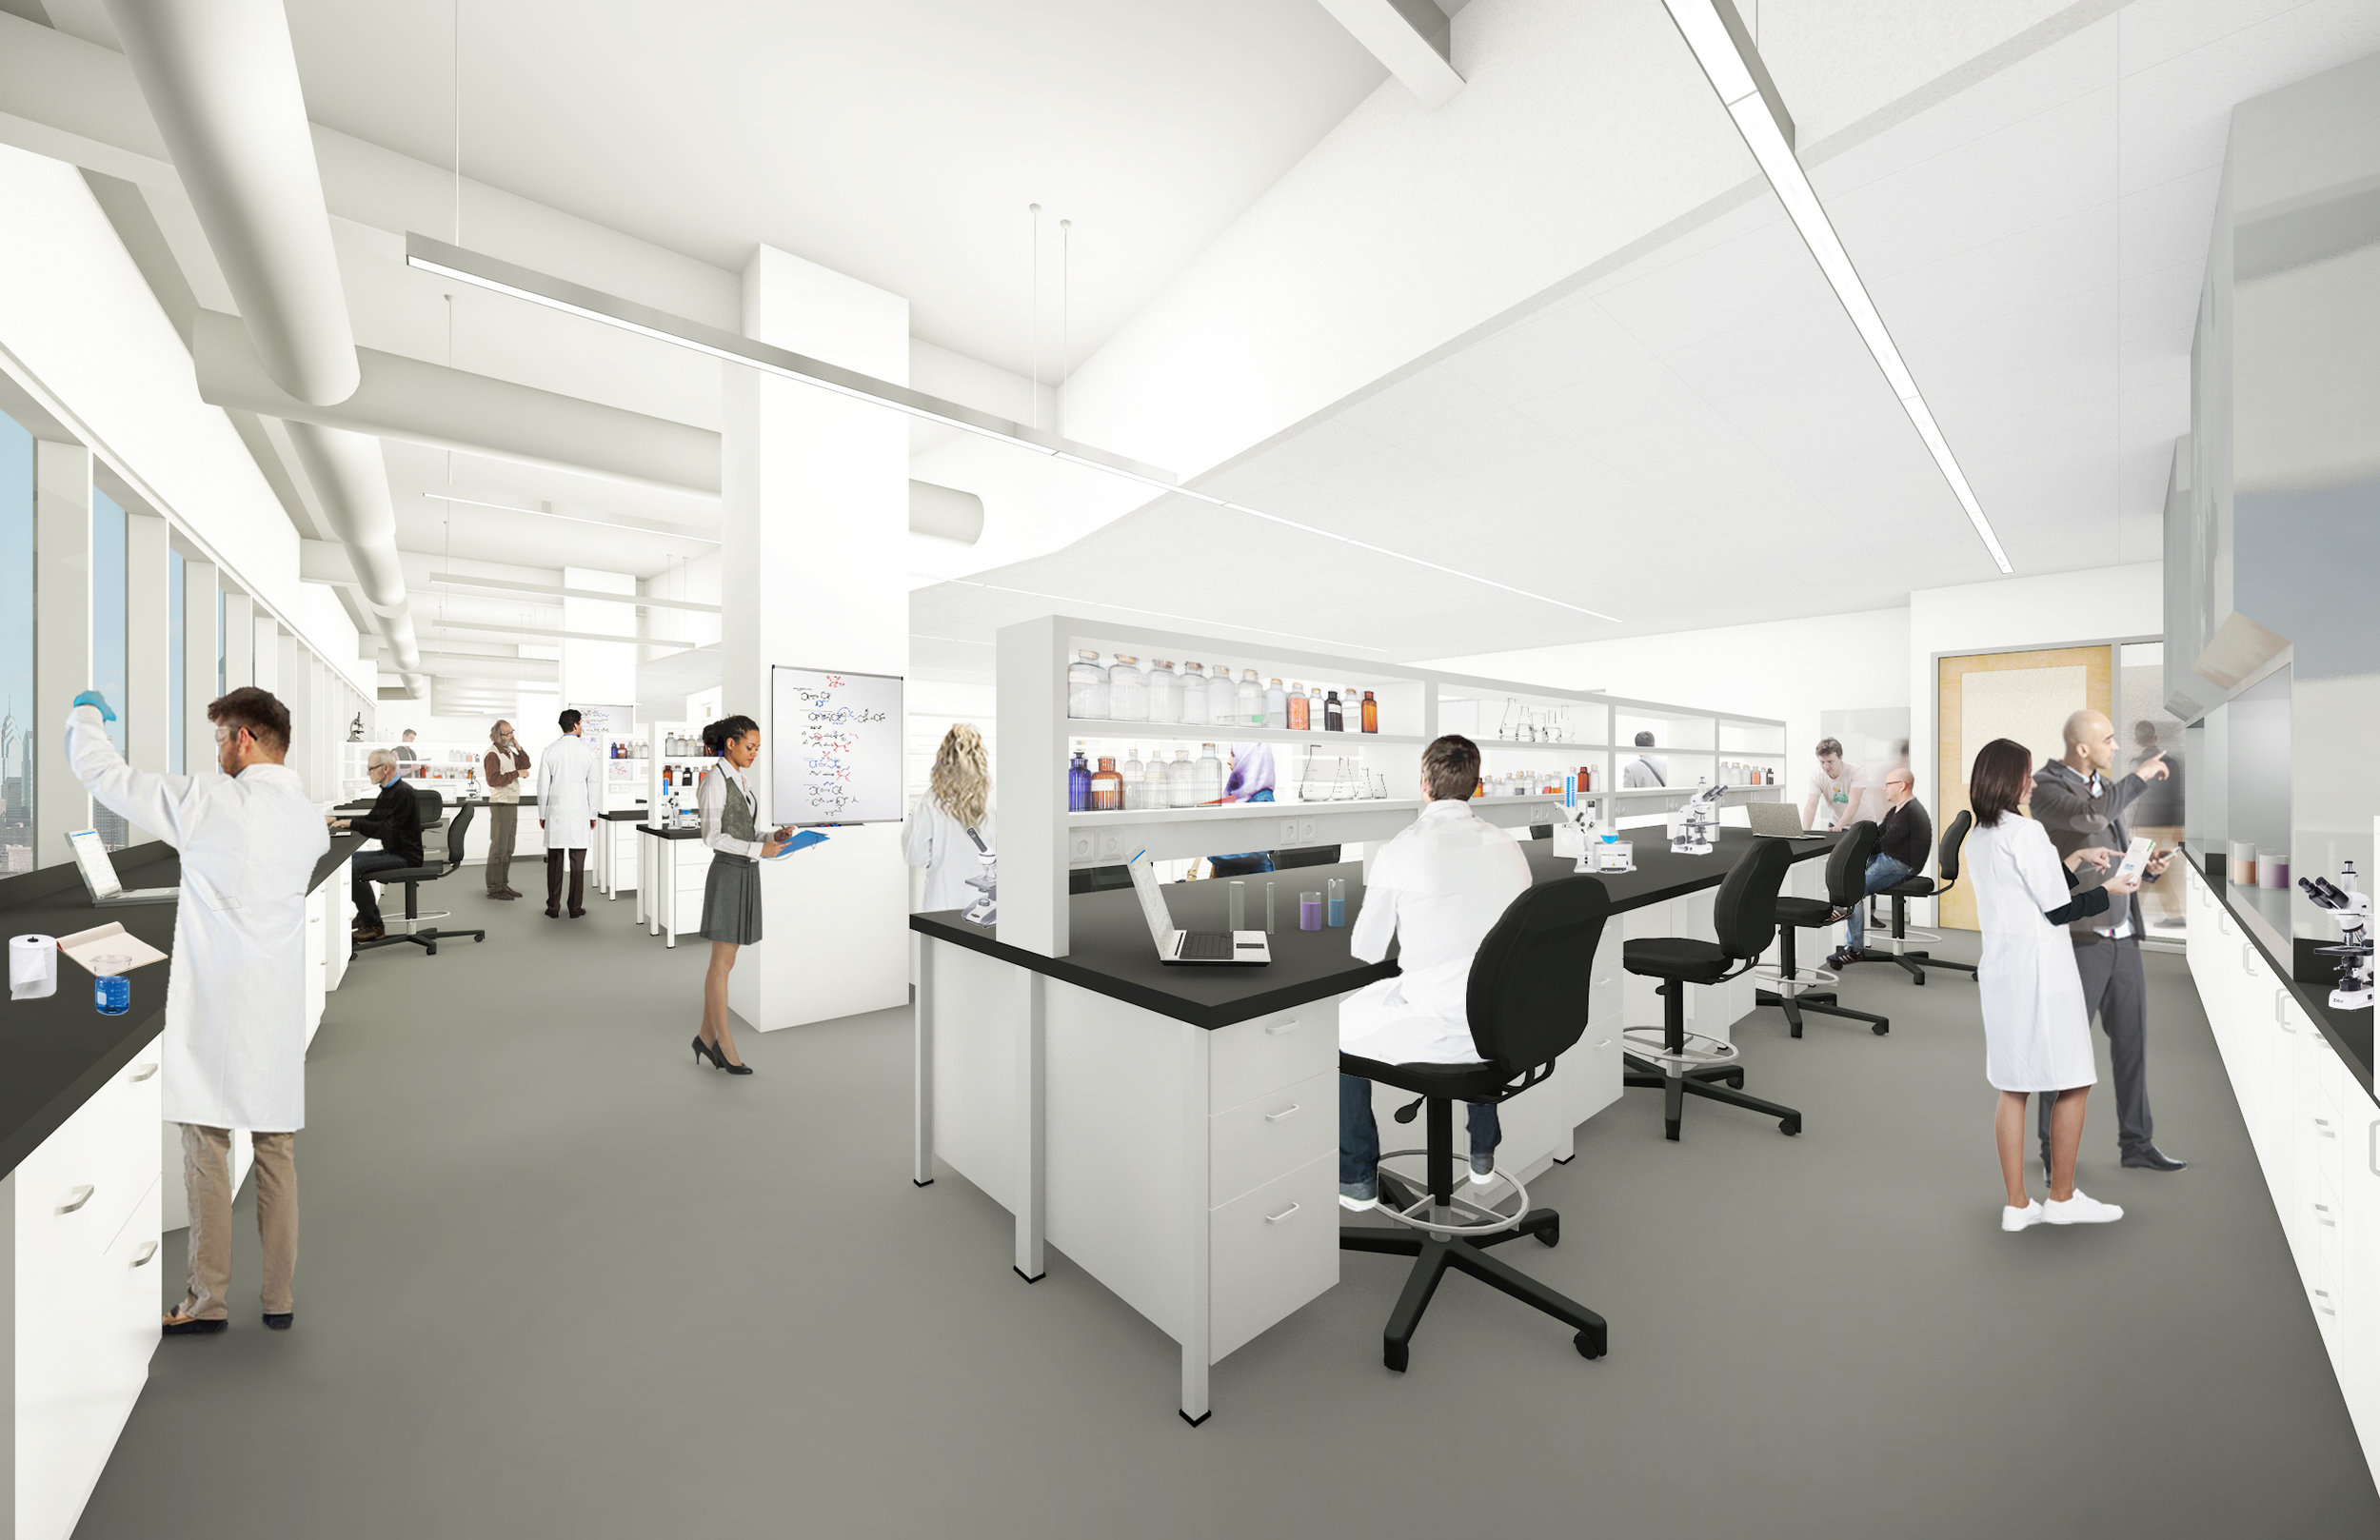 A rendering of our upcoming lab space.